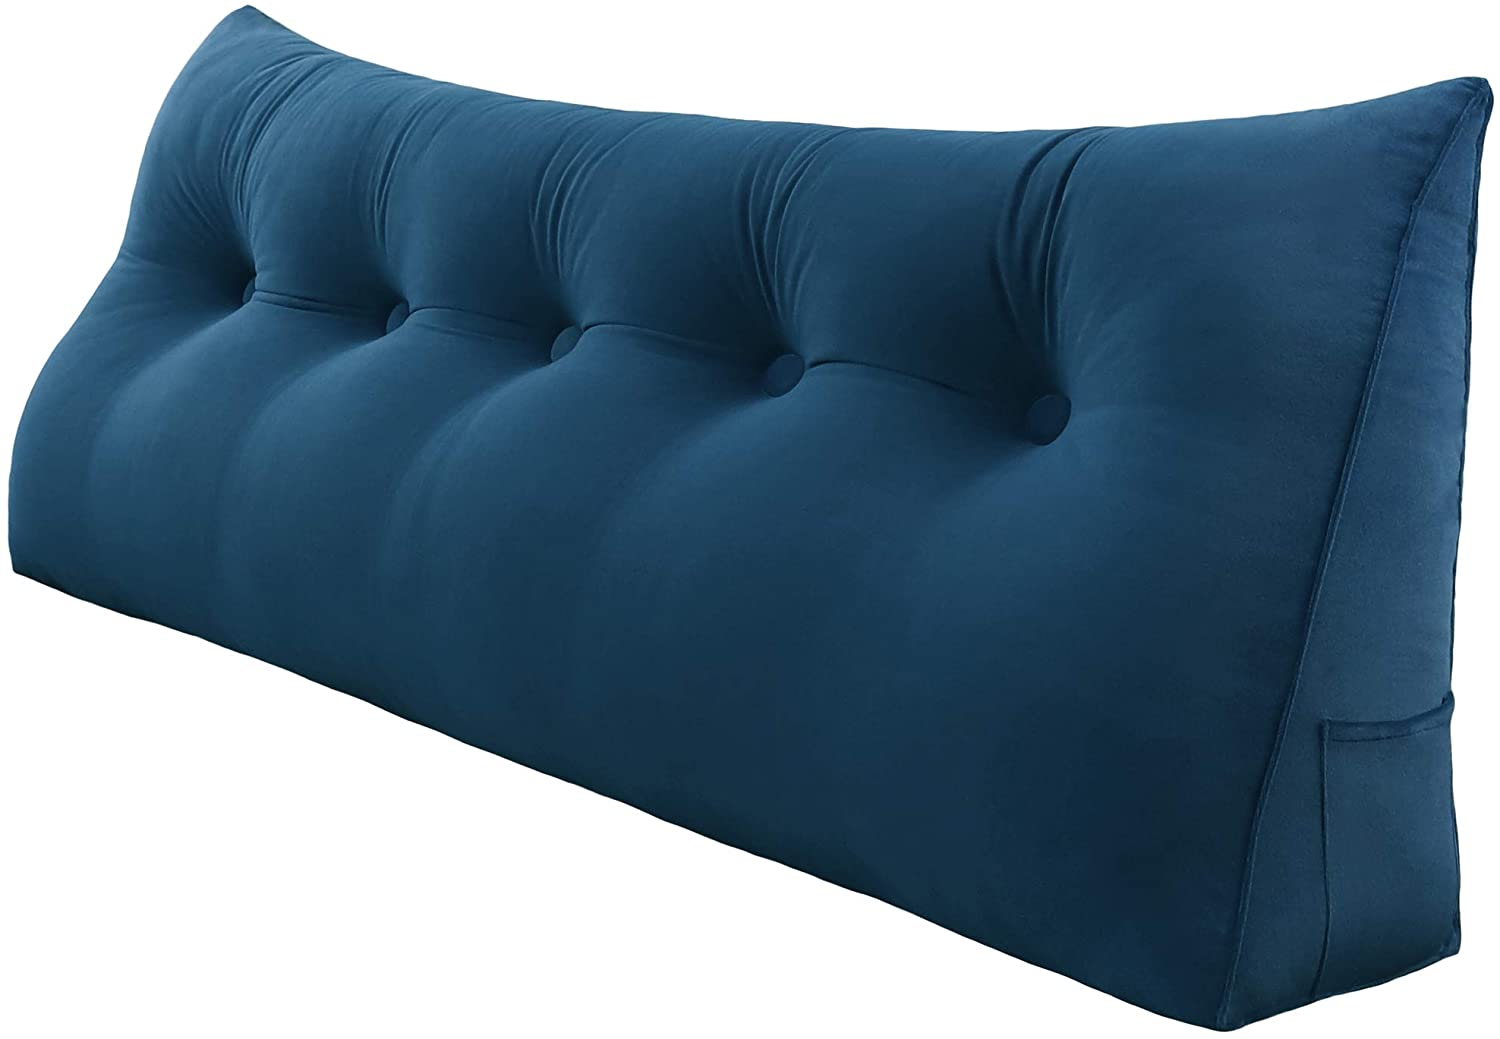 WOWMAX Triangular Wedge and Body Positioners Reading Pillow Large Bolster Headboard Backrest Support Cushion for Day Bed Bunk Bed with Removable Cover 59 Inches Velvet Dark Blue